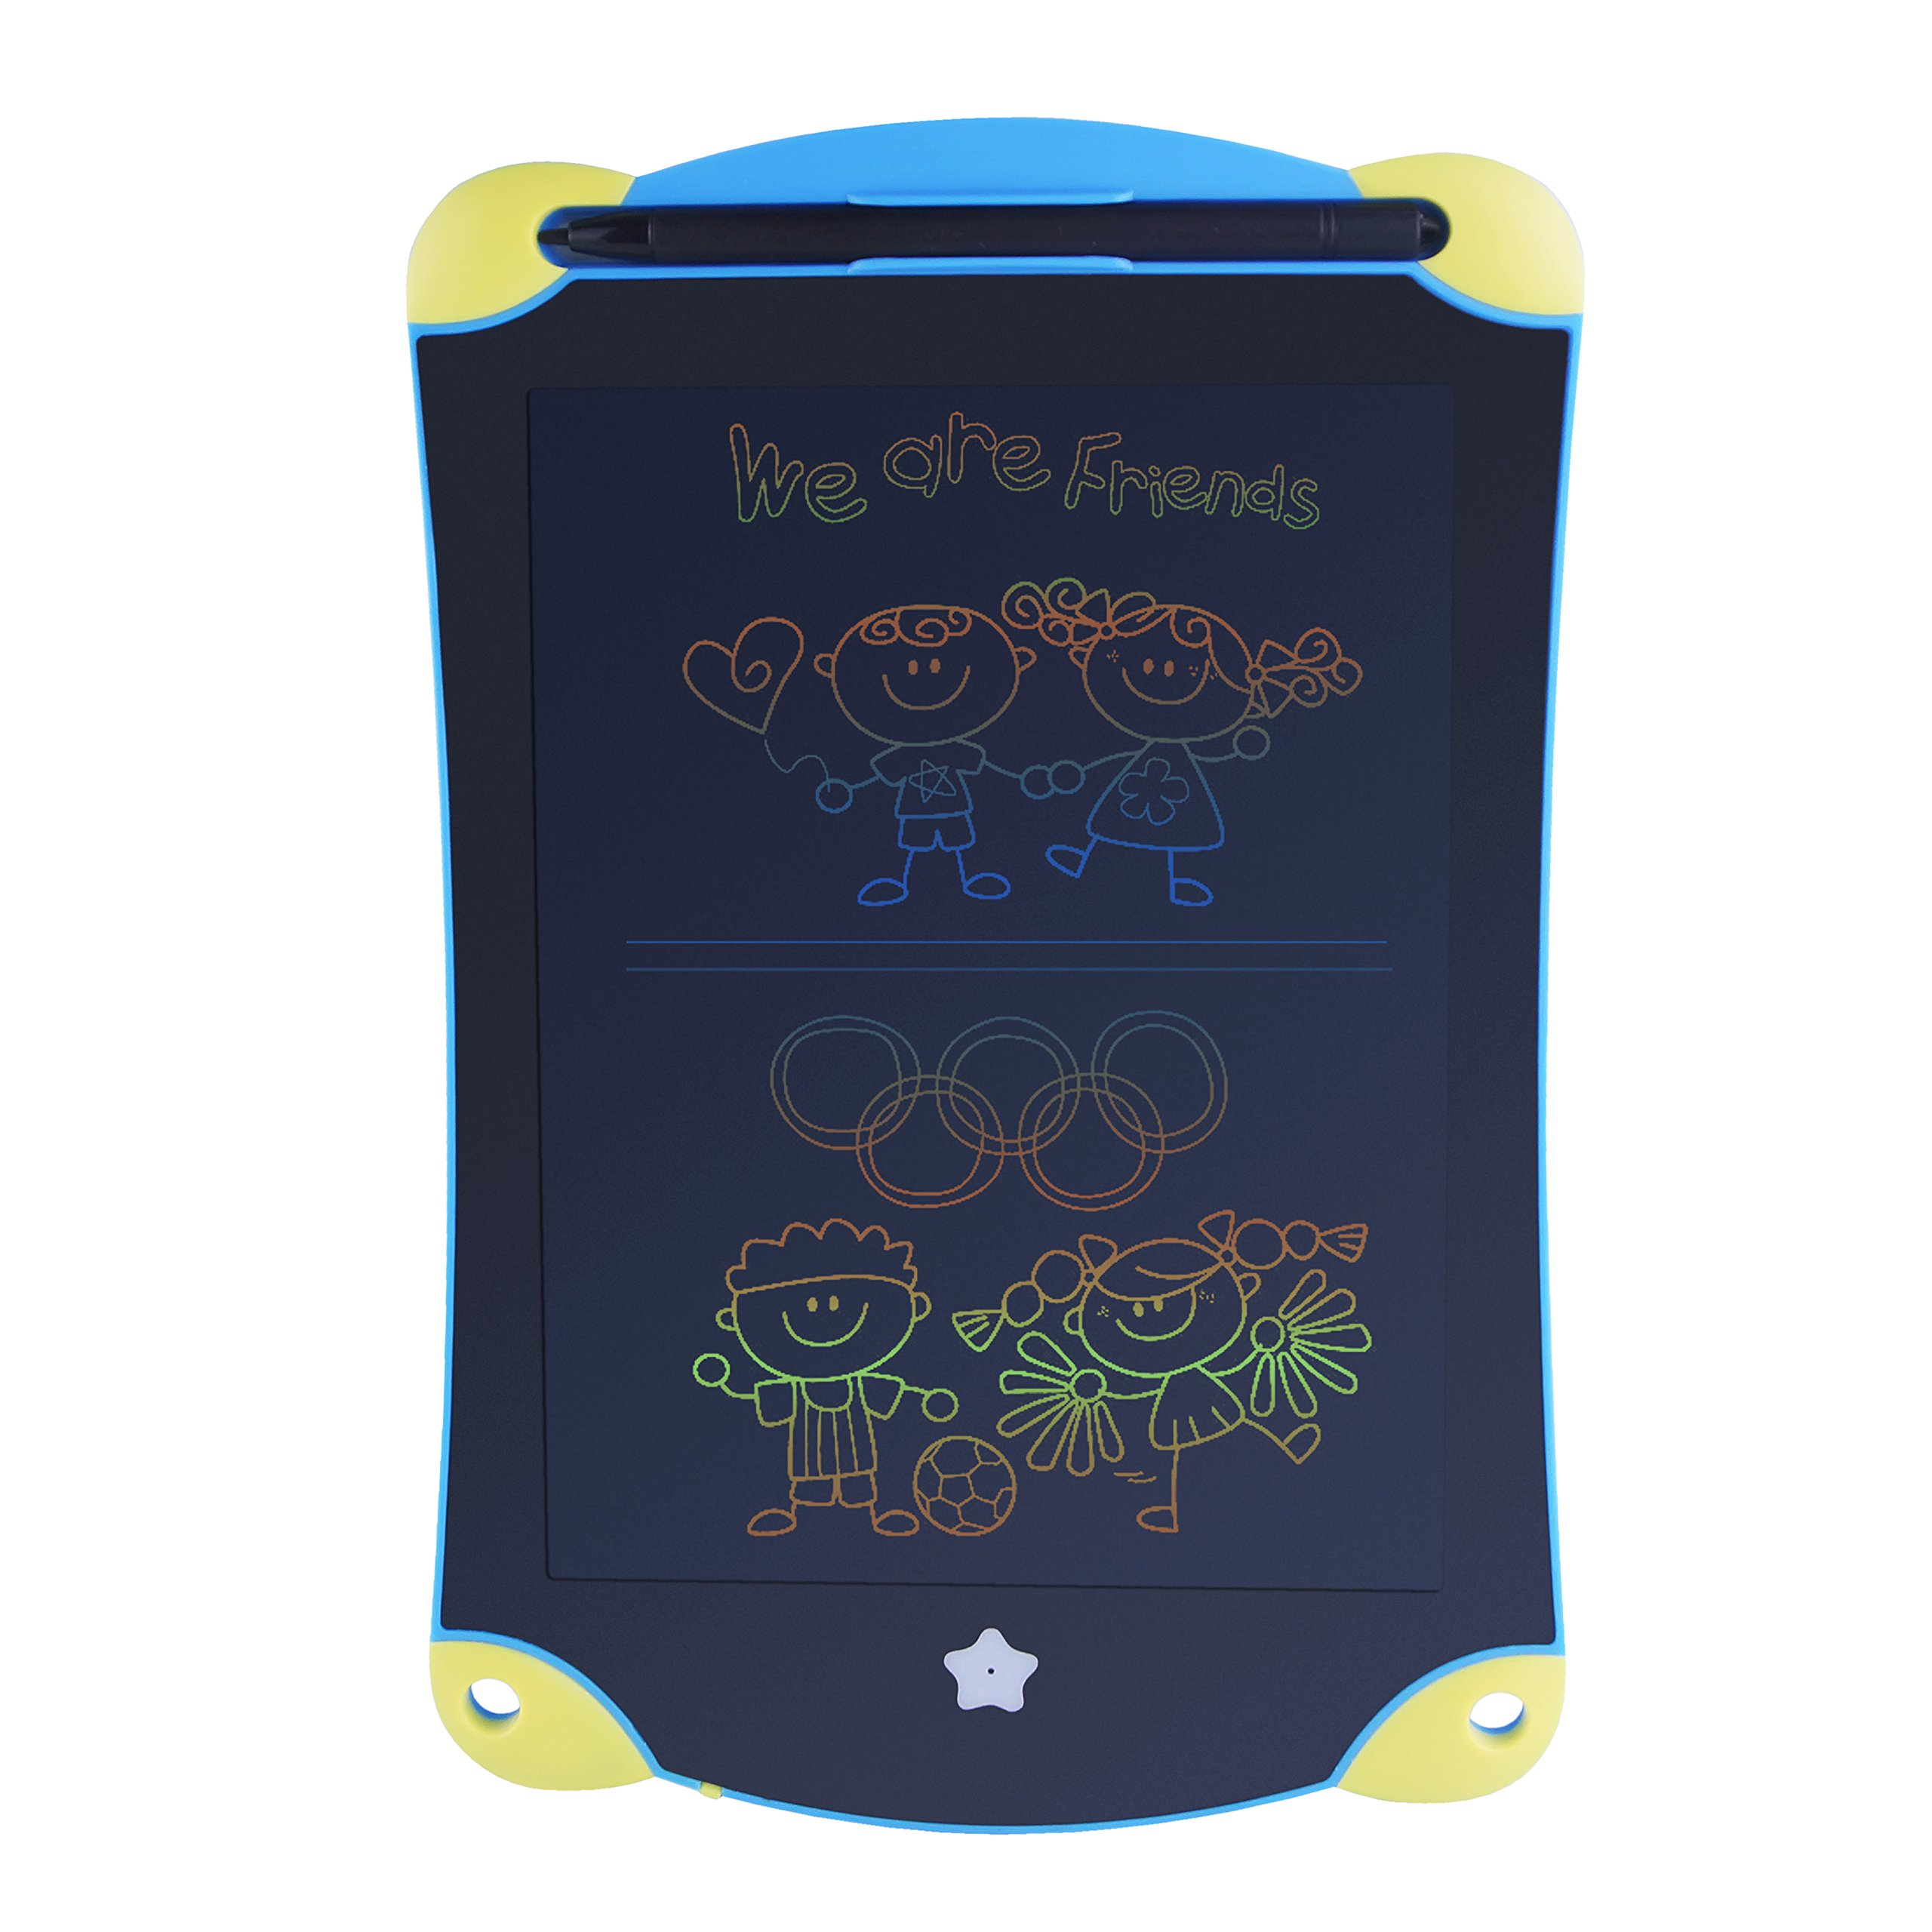 Glolux Colorful LCD Writing Board Doodle Board Pad For Kid Learning (8.5 Inch, Yellow-Blue) by Glolux